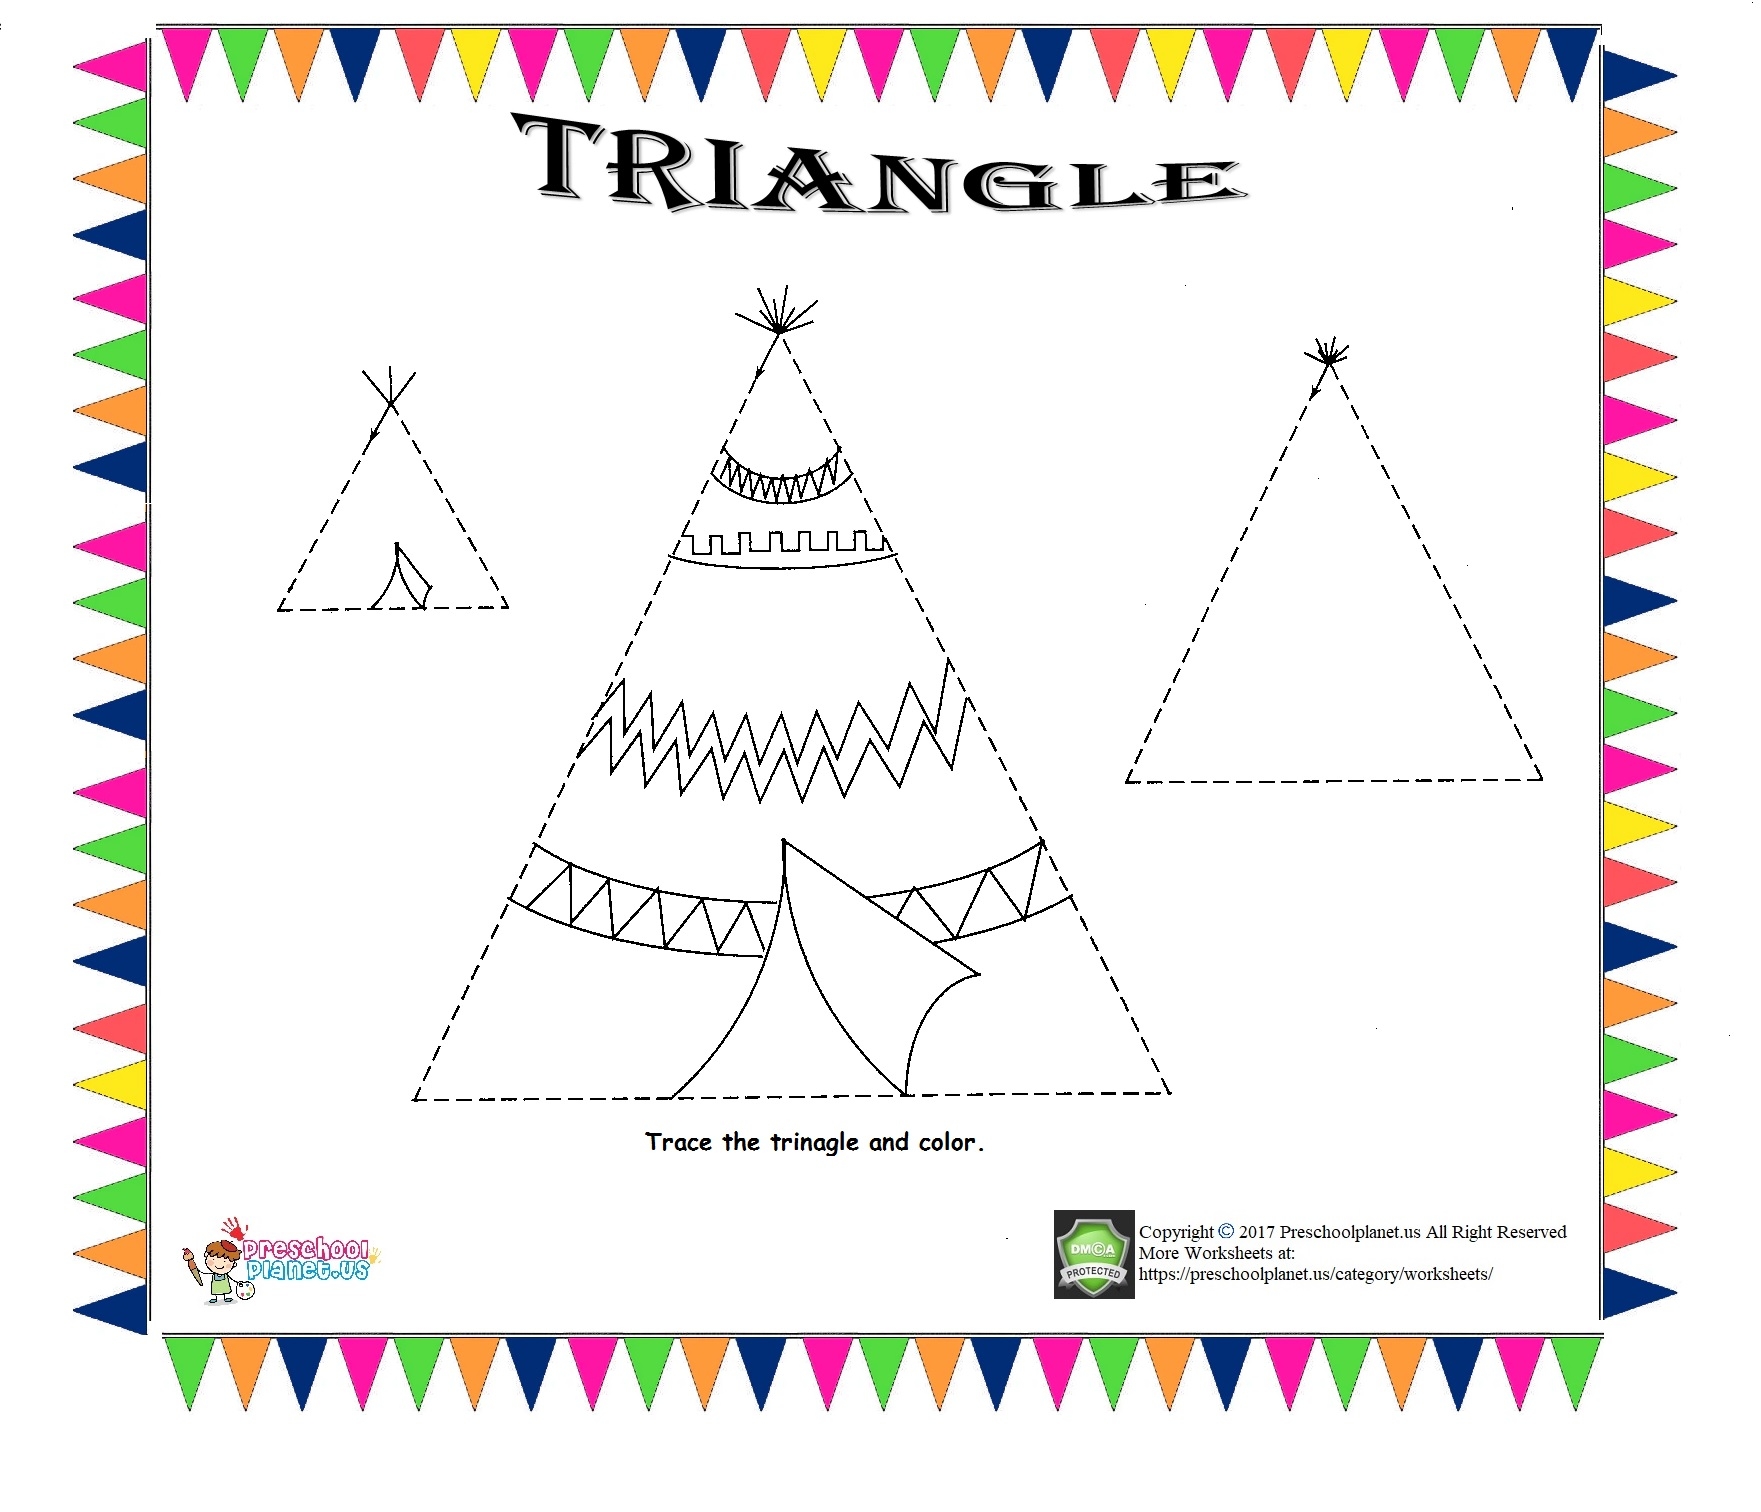 Triangle Trace Worksheet For Kids